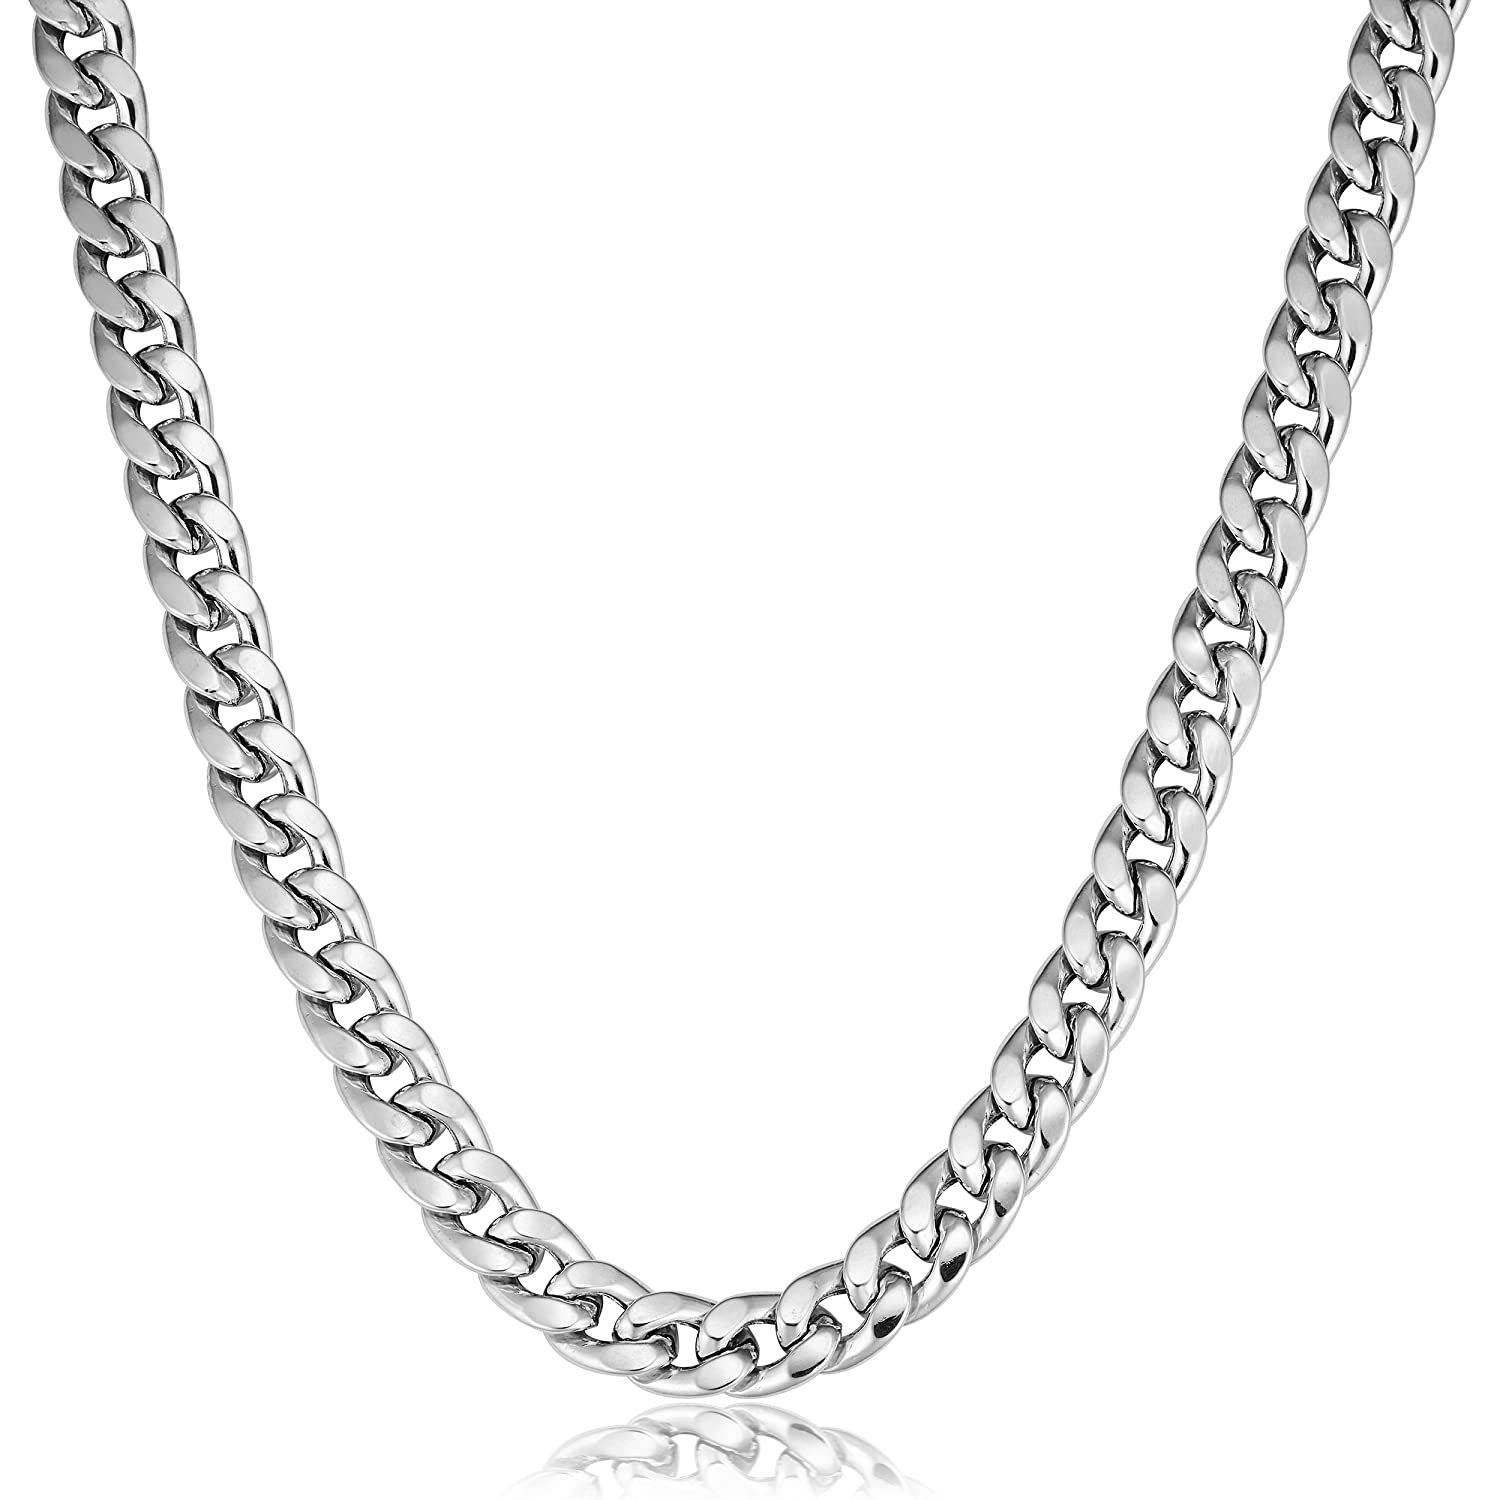 8 mm, 20 inch Kooljewelry Mens Sterling Silver Bold Hollow Curb Link Necklace